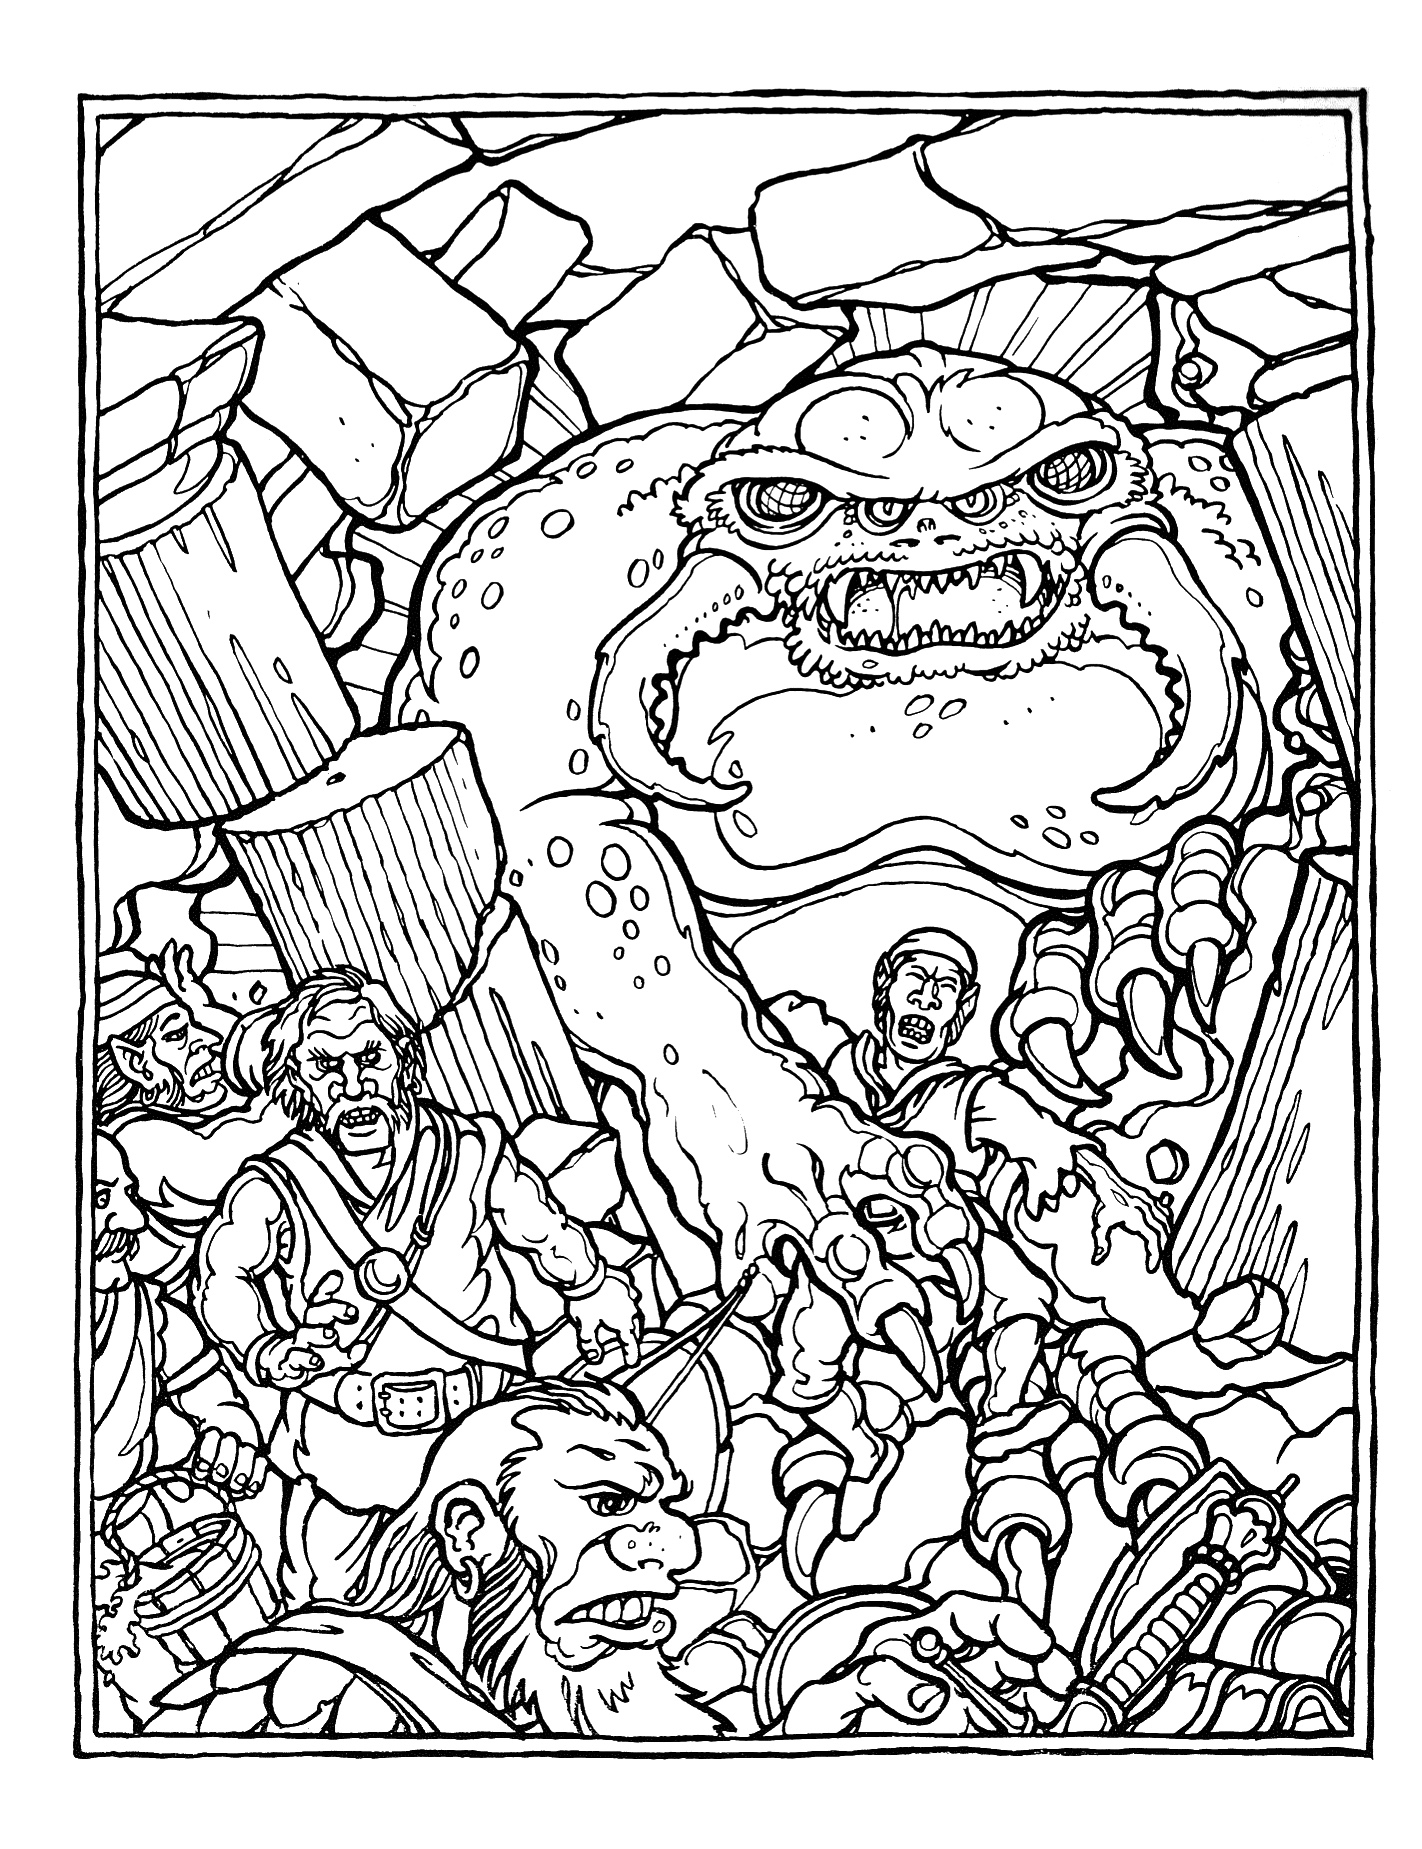 dungeons and dragons coloring pages - photo#8